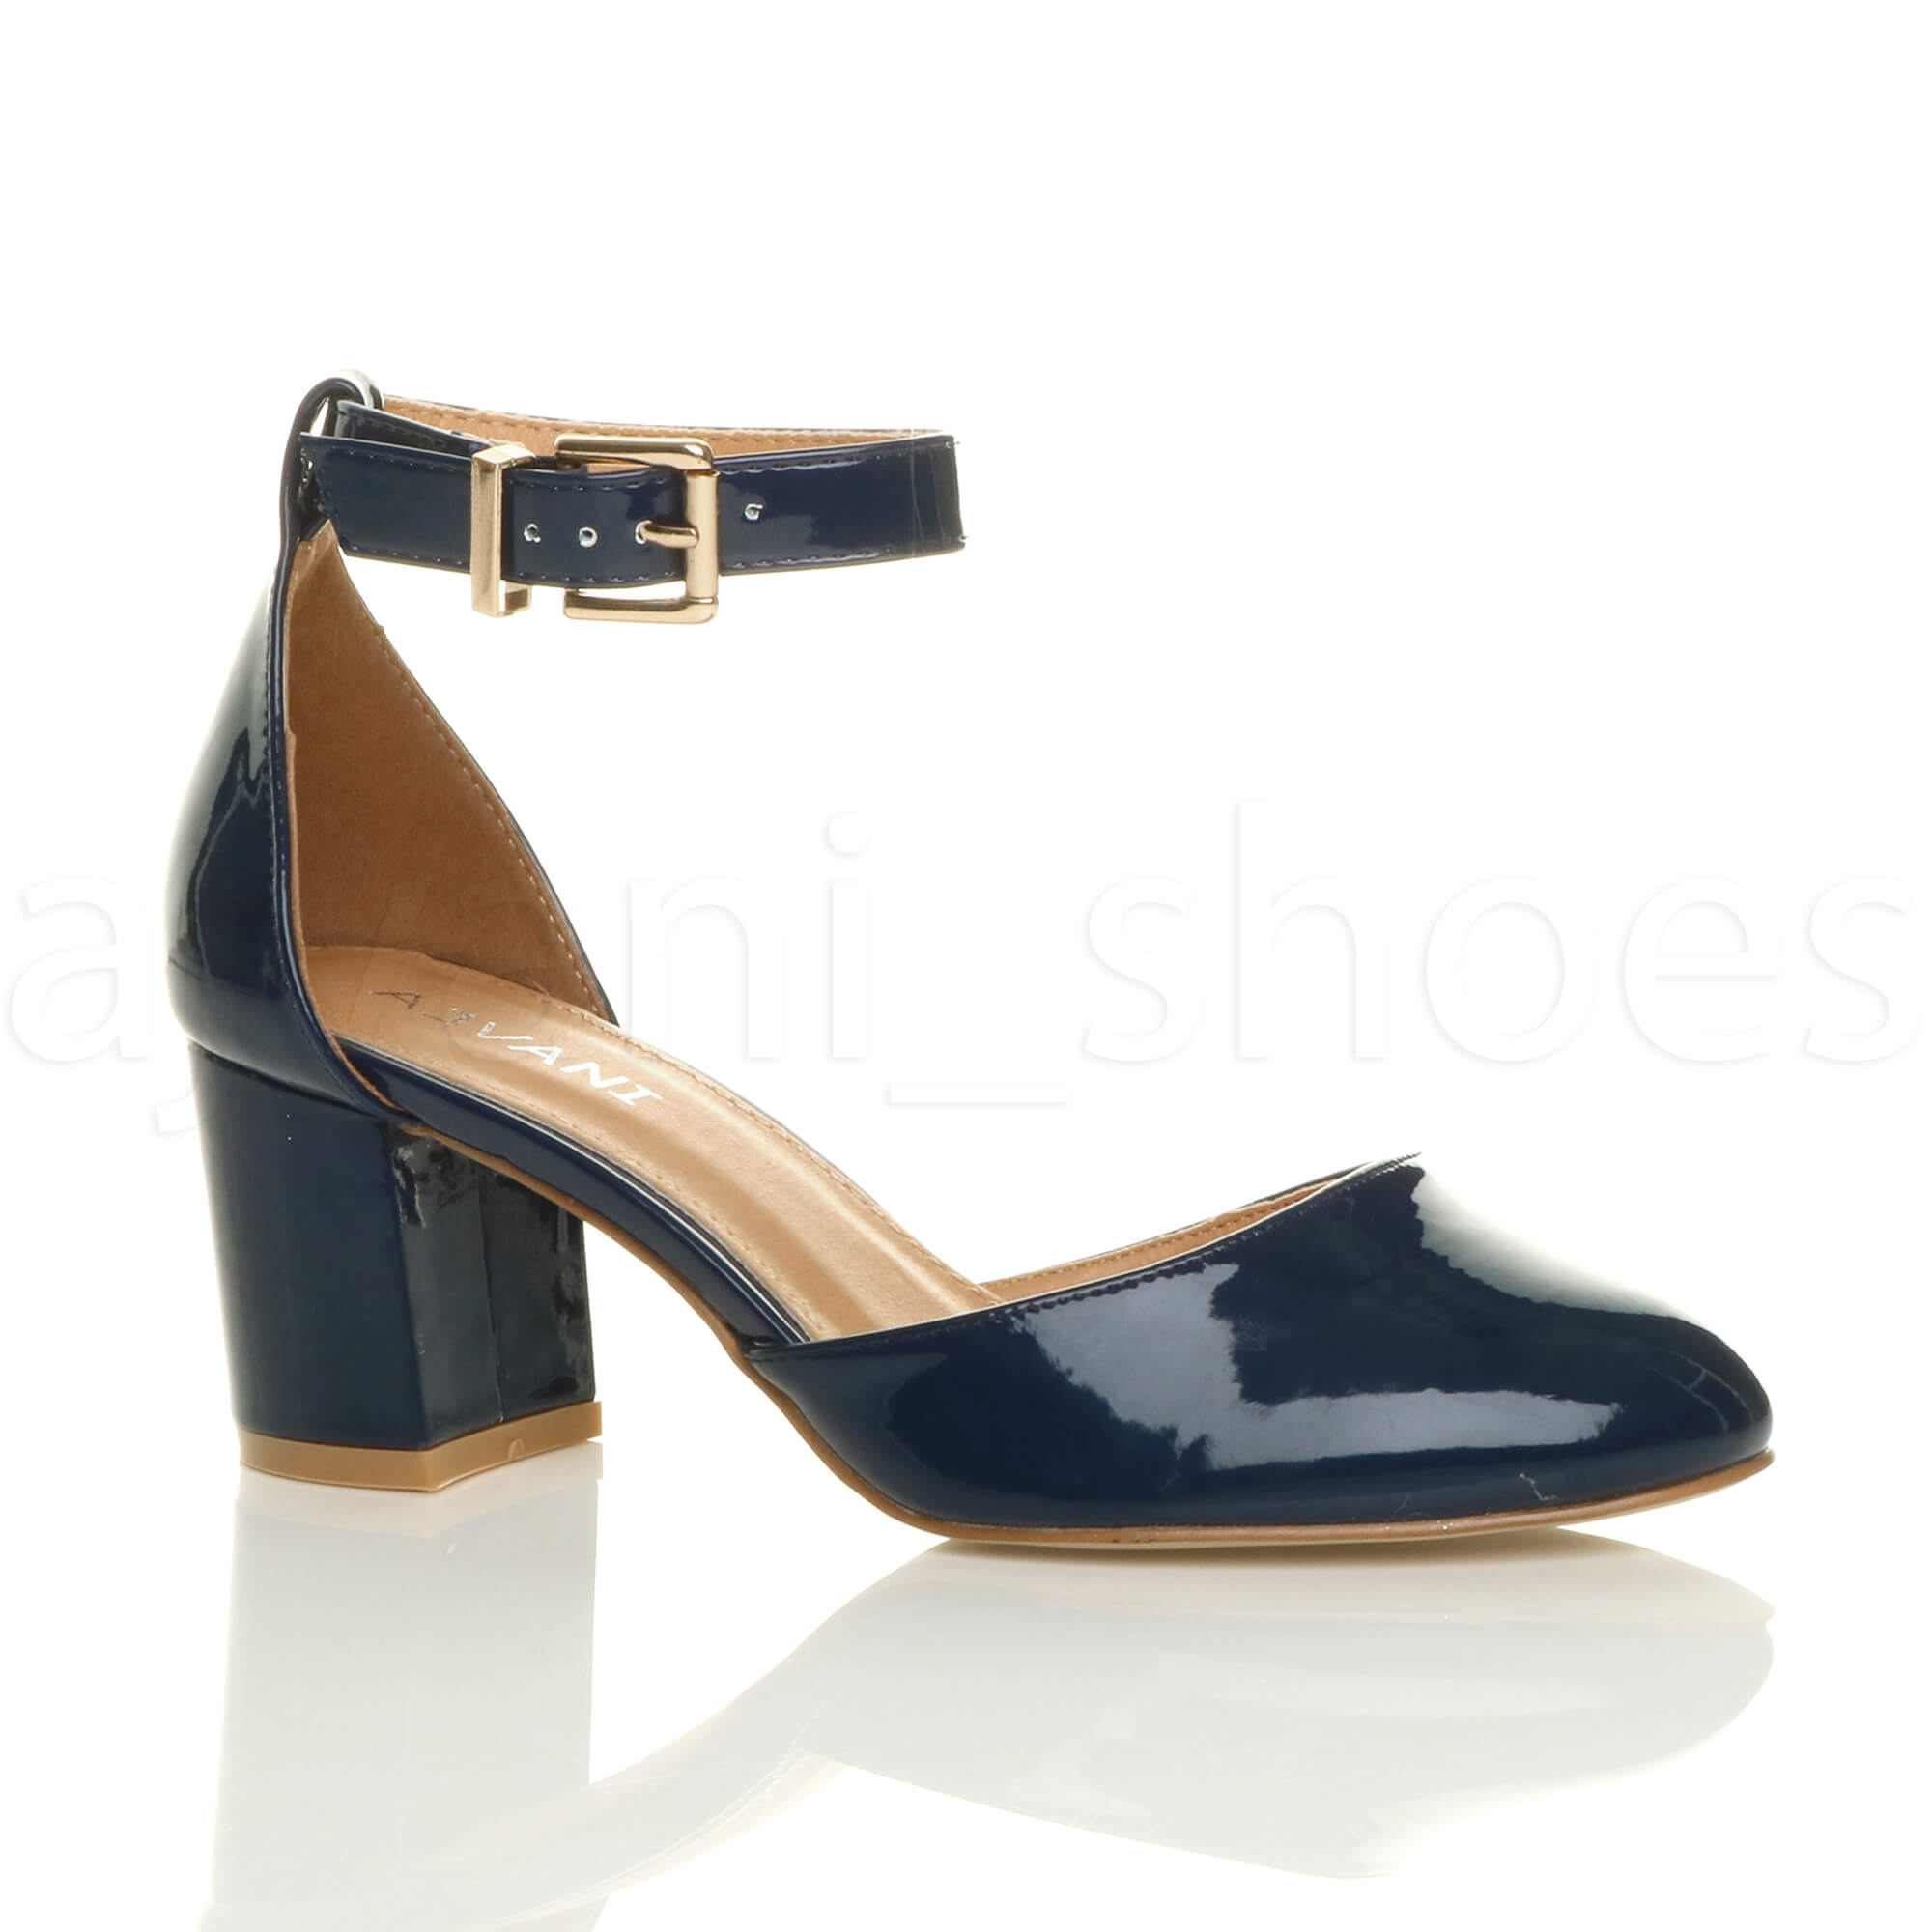 Navy Court Shoes Low Heel With Strap